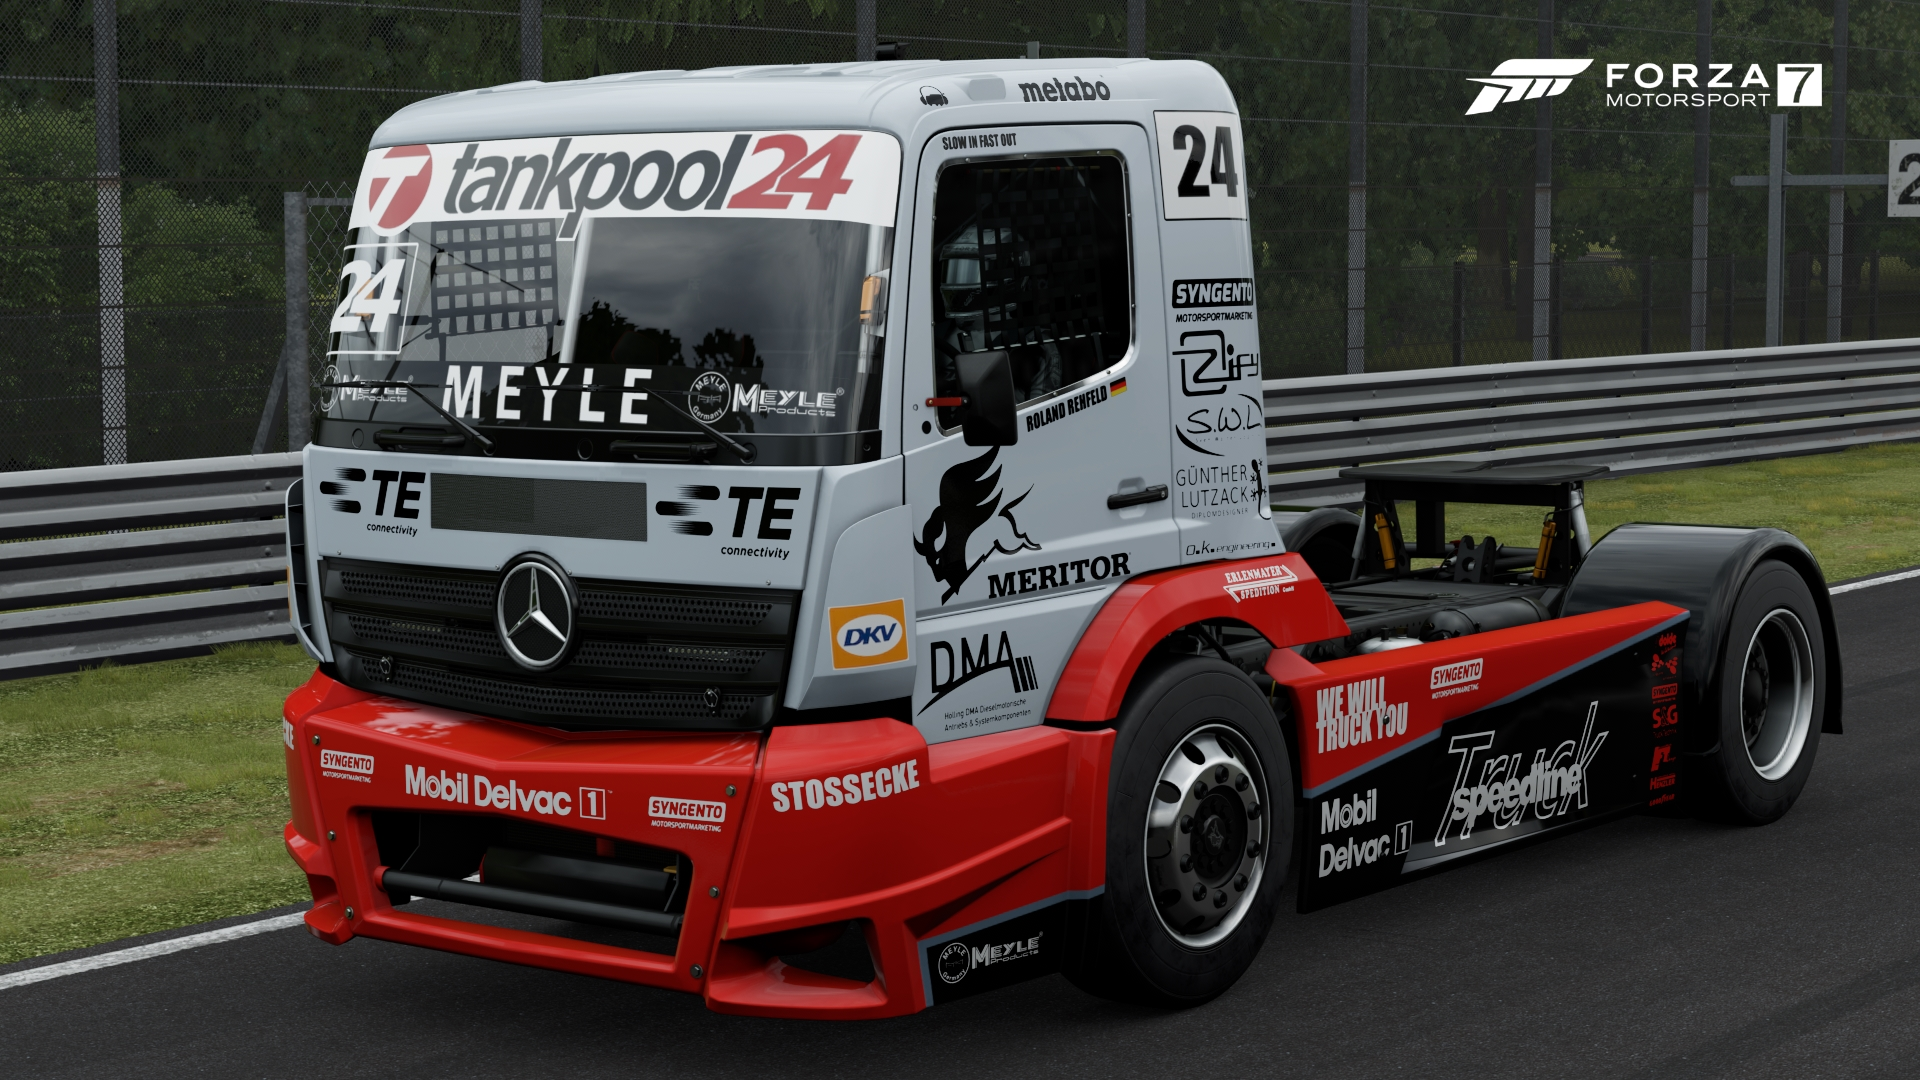 Mercedes benz 24 tankpool24 racing truck forza for Mercedes benz motorsport